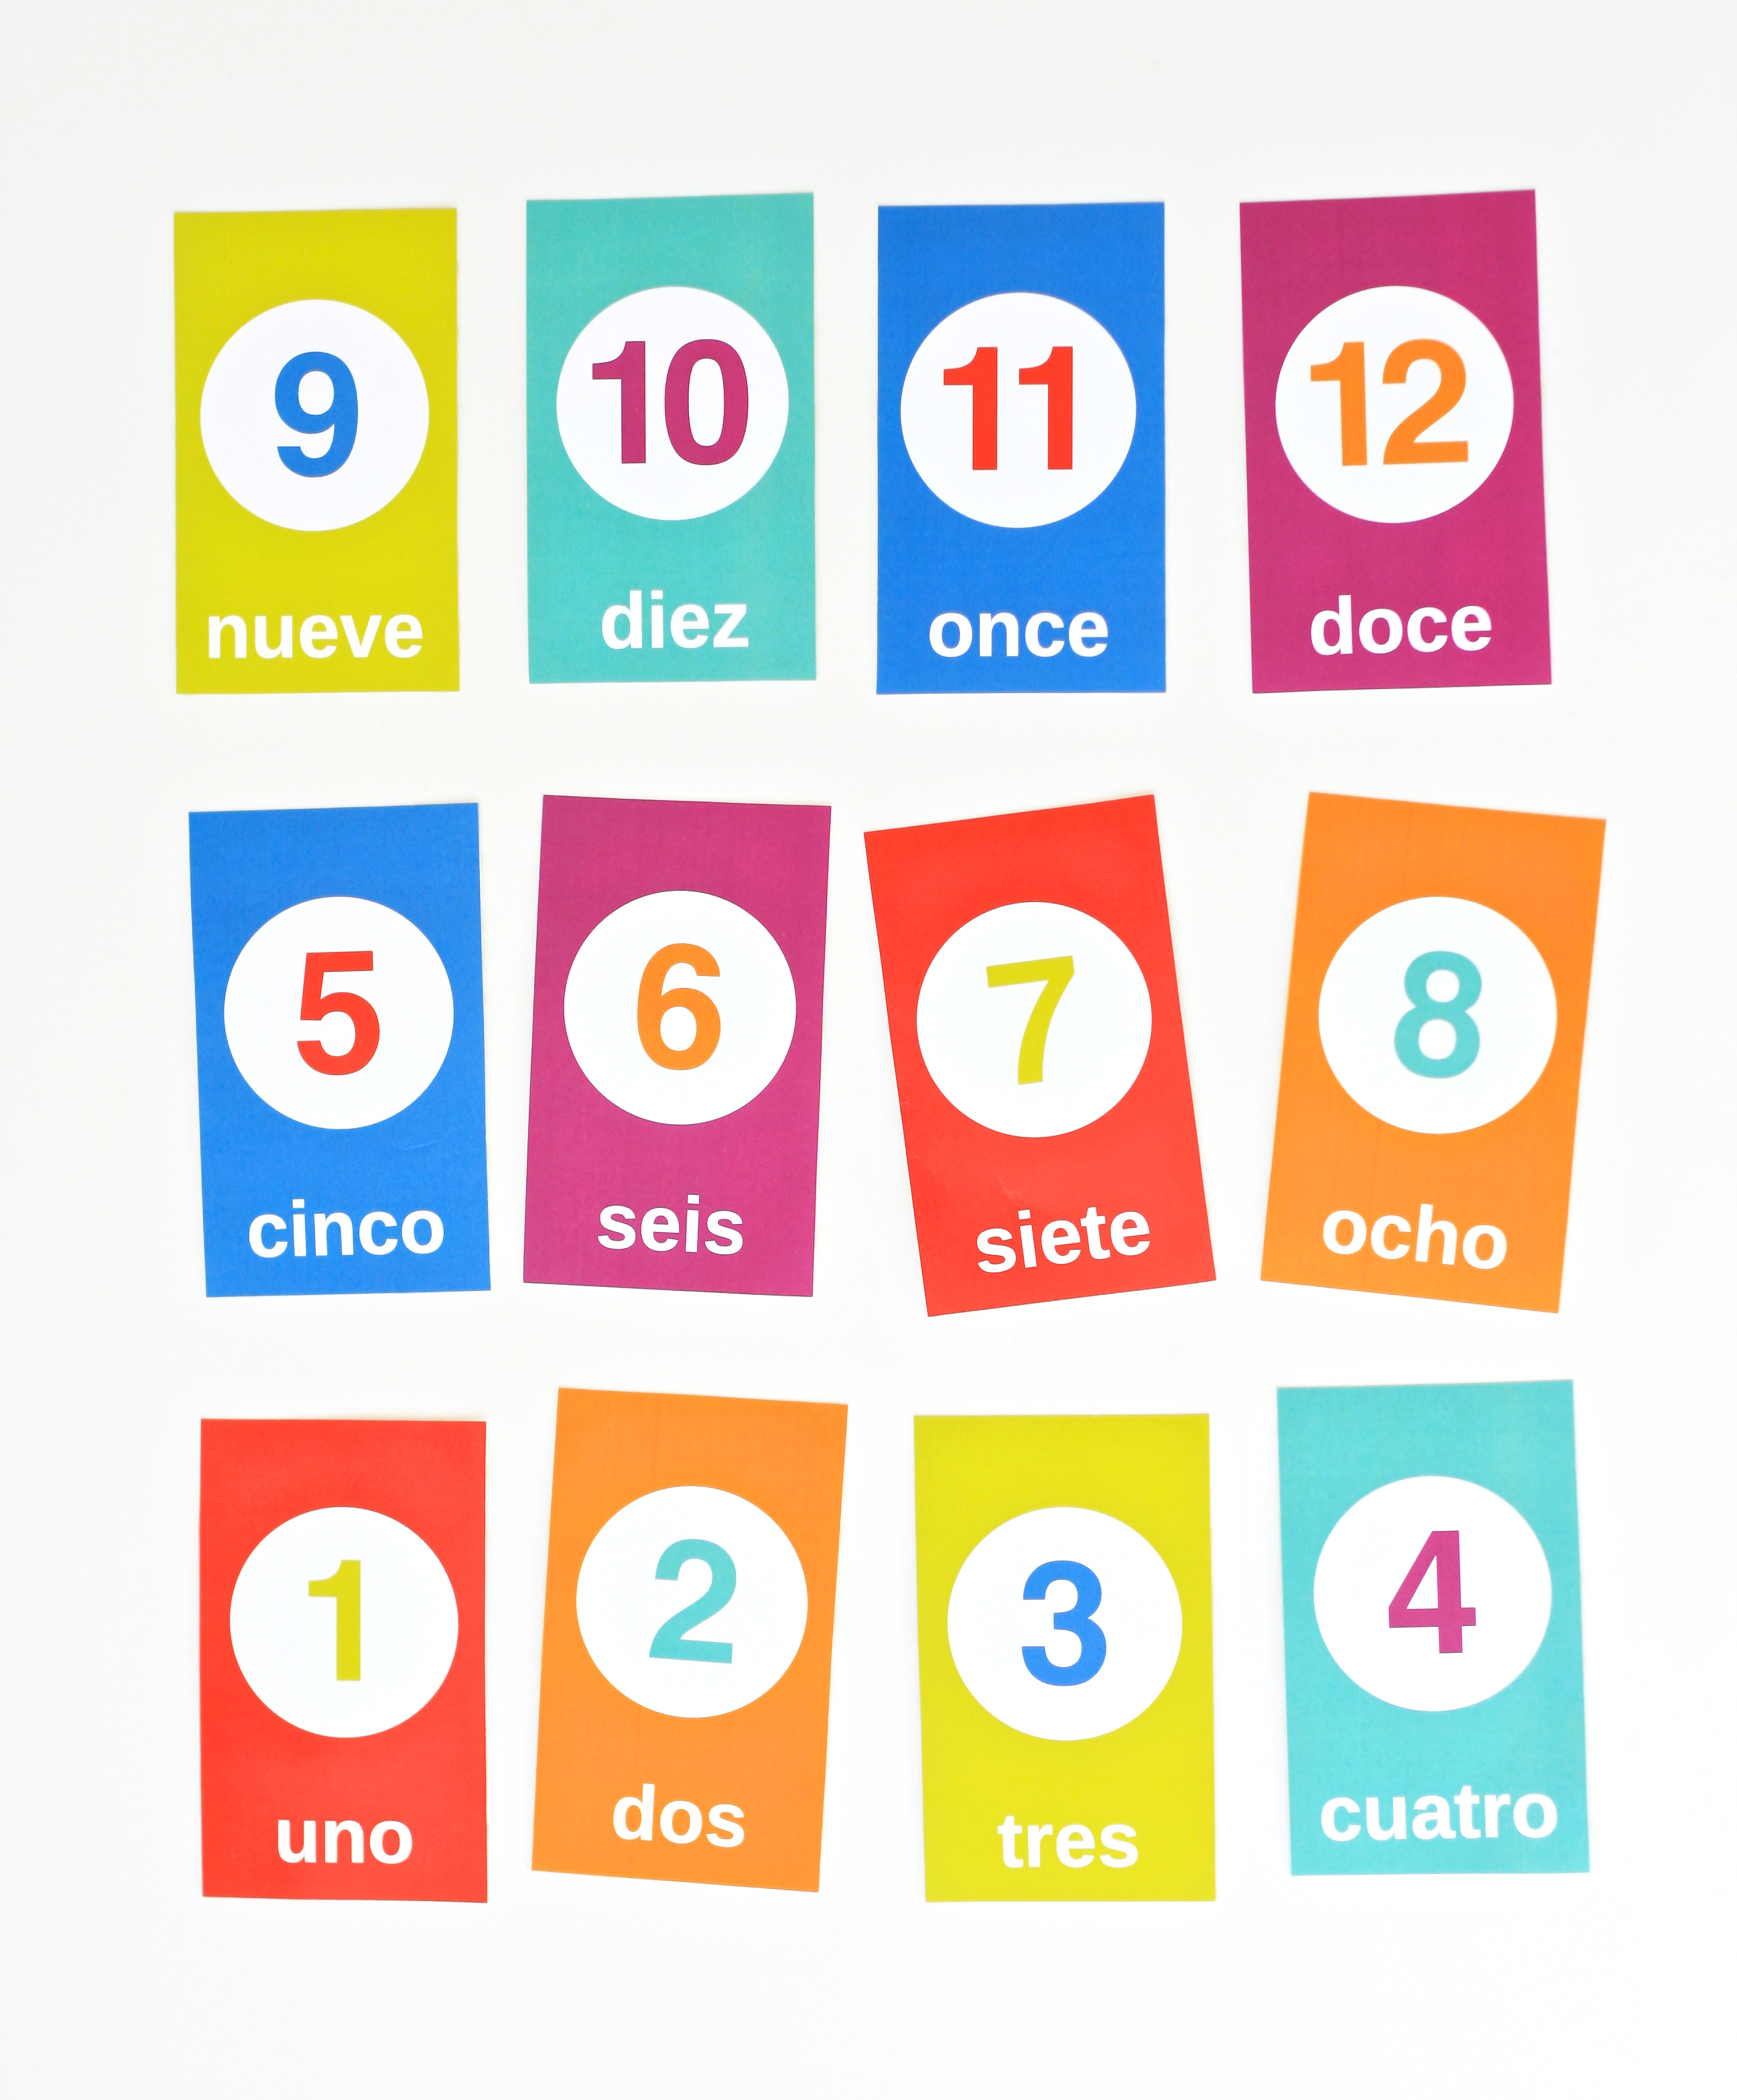 Free Flashcards For Counting In Spanish